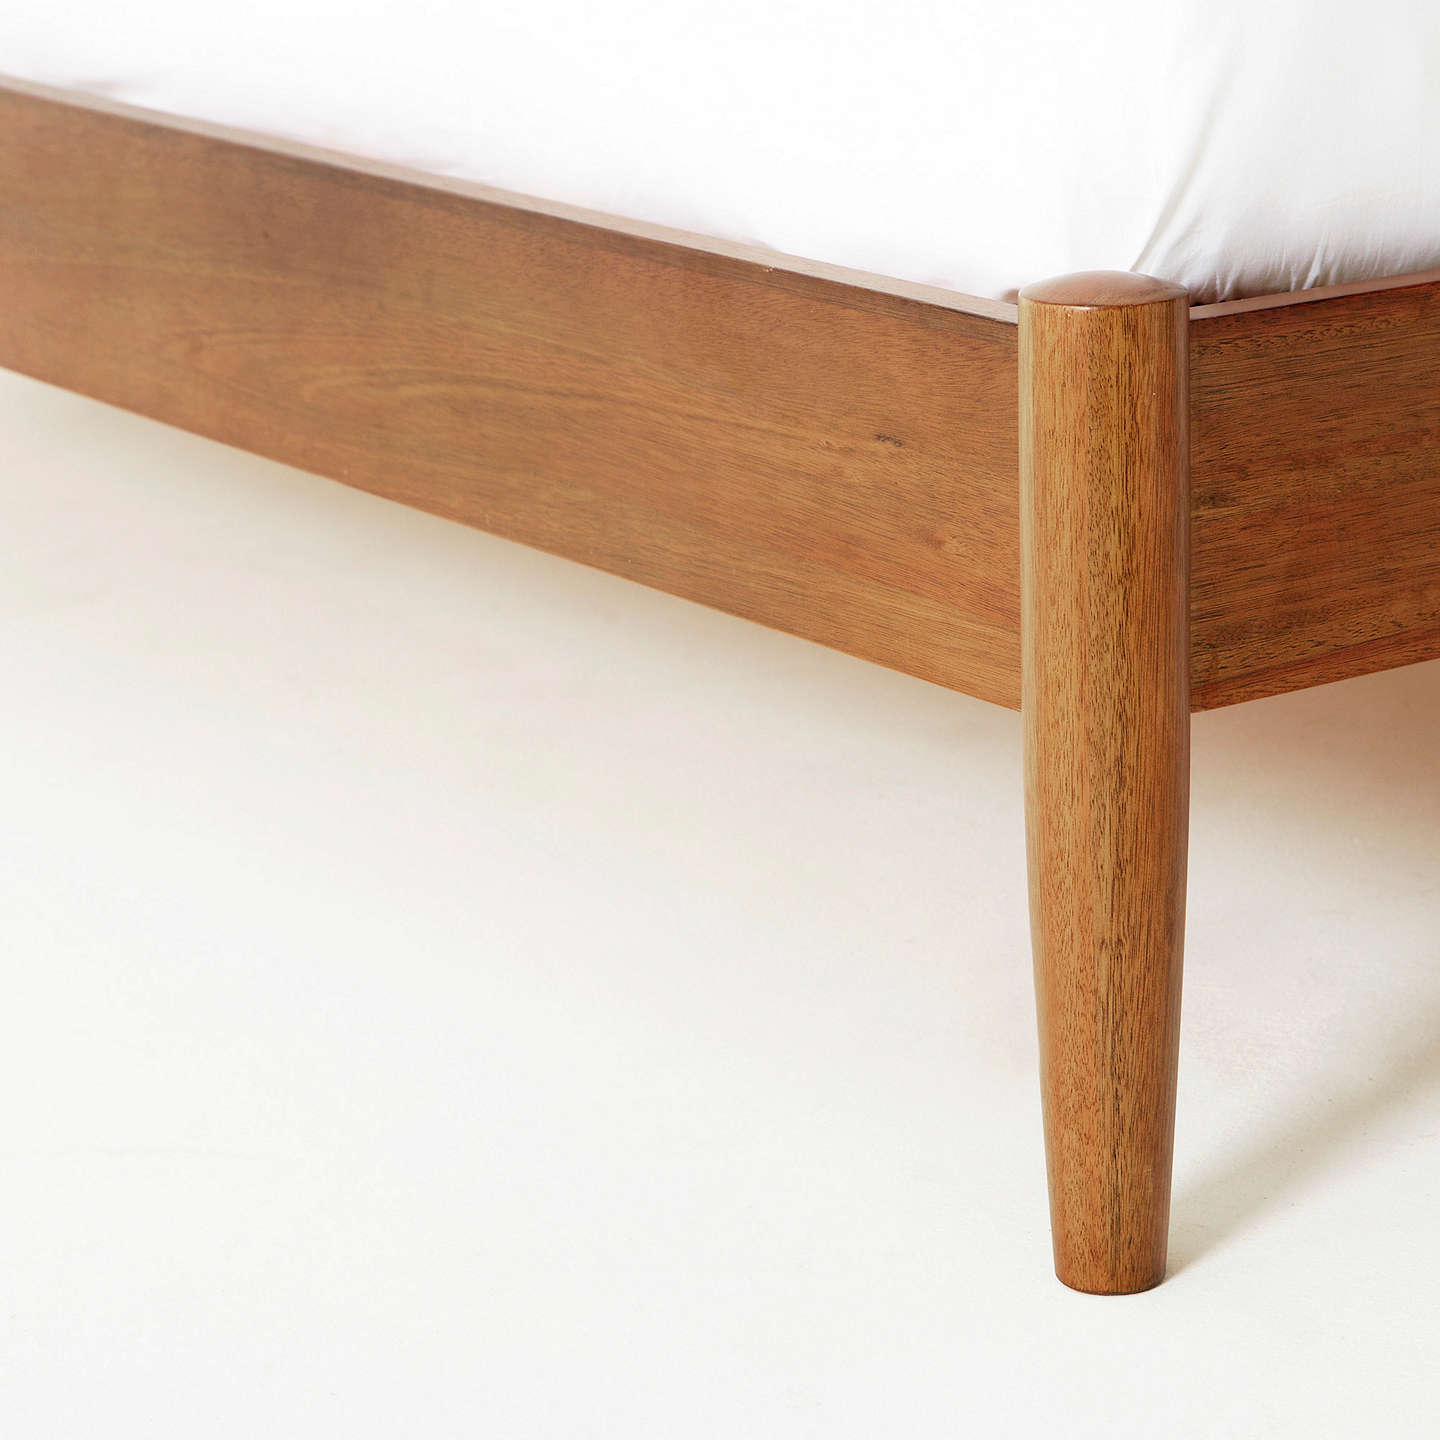 Buywest elm Mid-Century Bed Frame, Double, Acorn Online at johnlewis.com